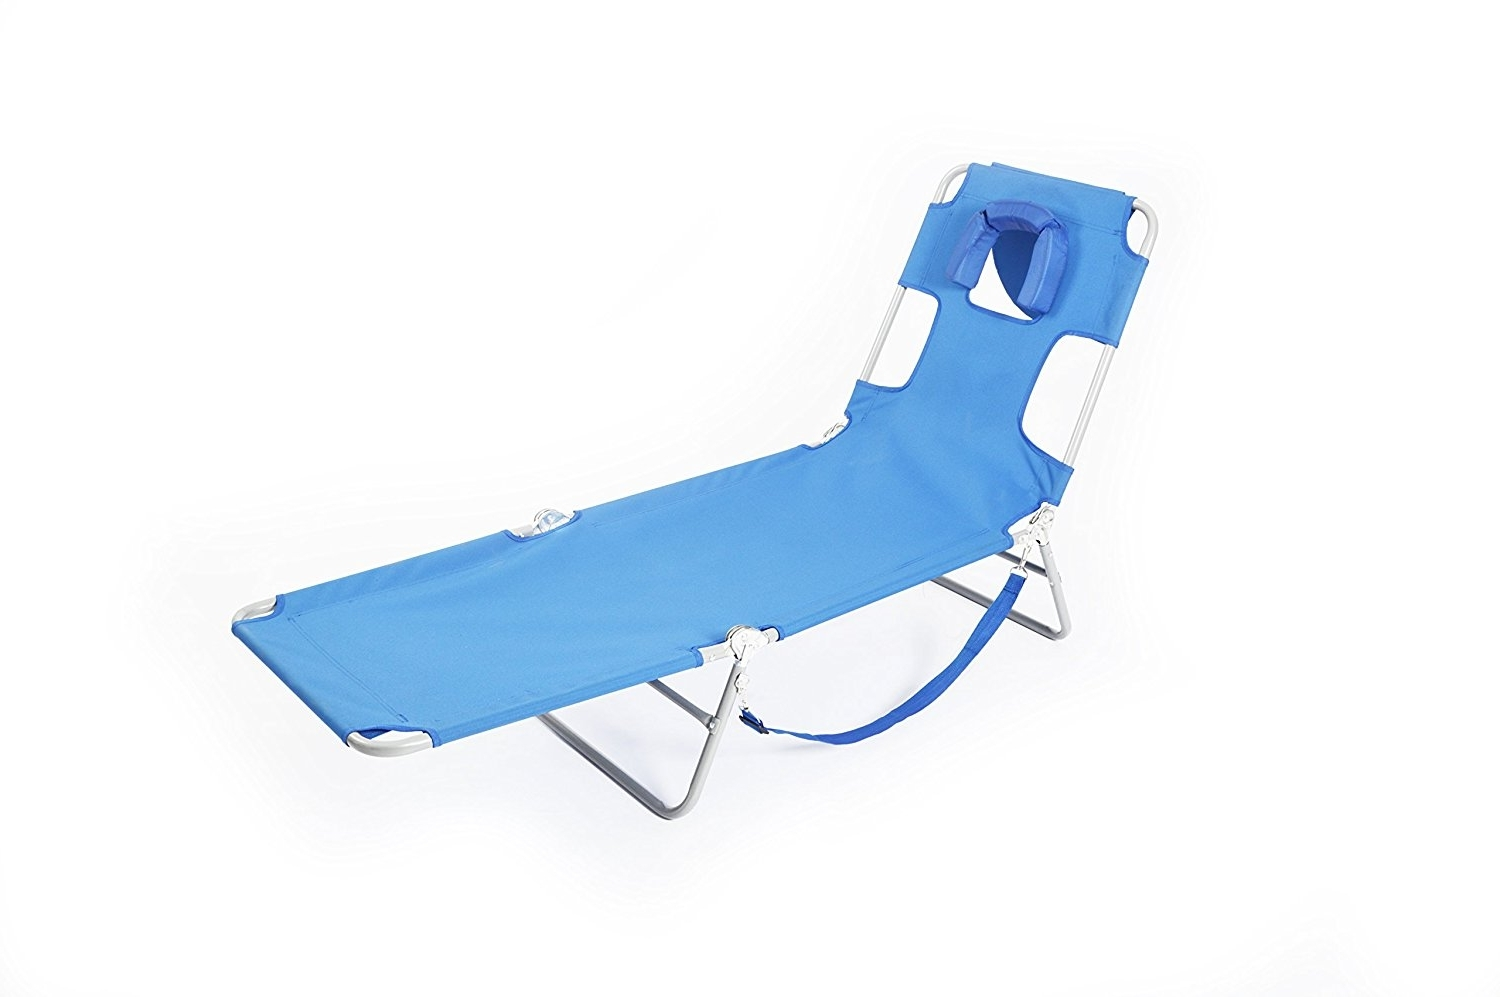 Amazon: Ostrich Lounge Chaise: Garden & Outdoor Throughout Well Liked Lounge Chaise Chair By Ostrich (View 3 of 15)